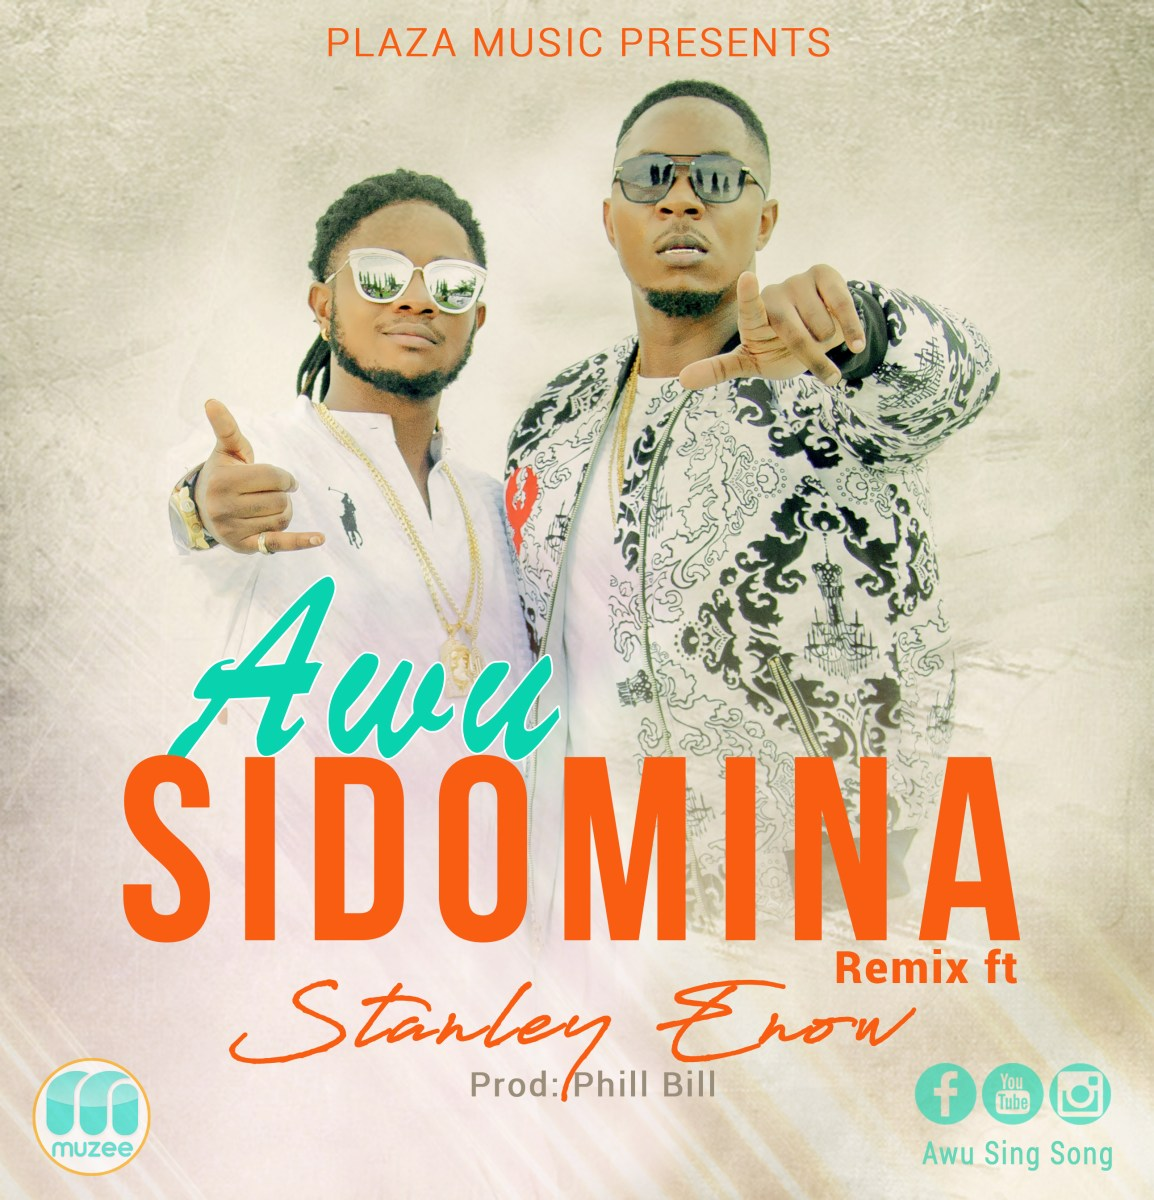 [Download][Hot Video+Audio]: Awu Feat. Stanley Enow - Sidomina Remix (Directed by Adah Akenji)